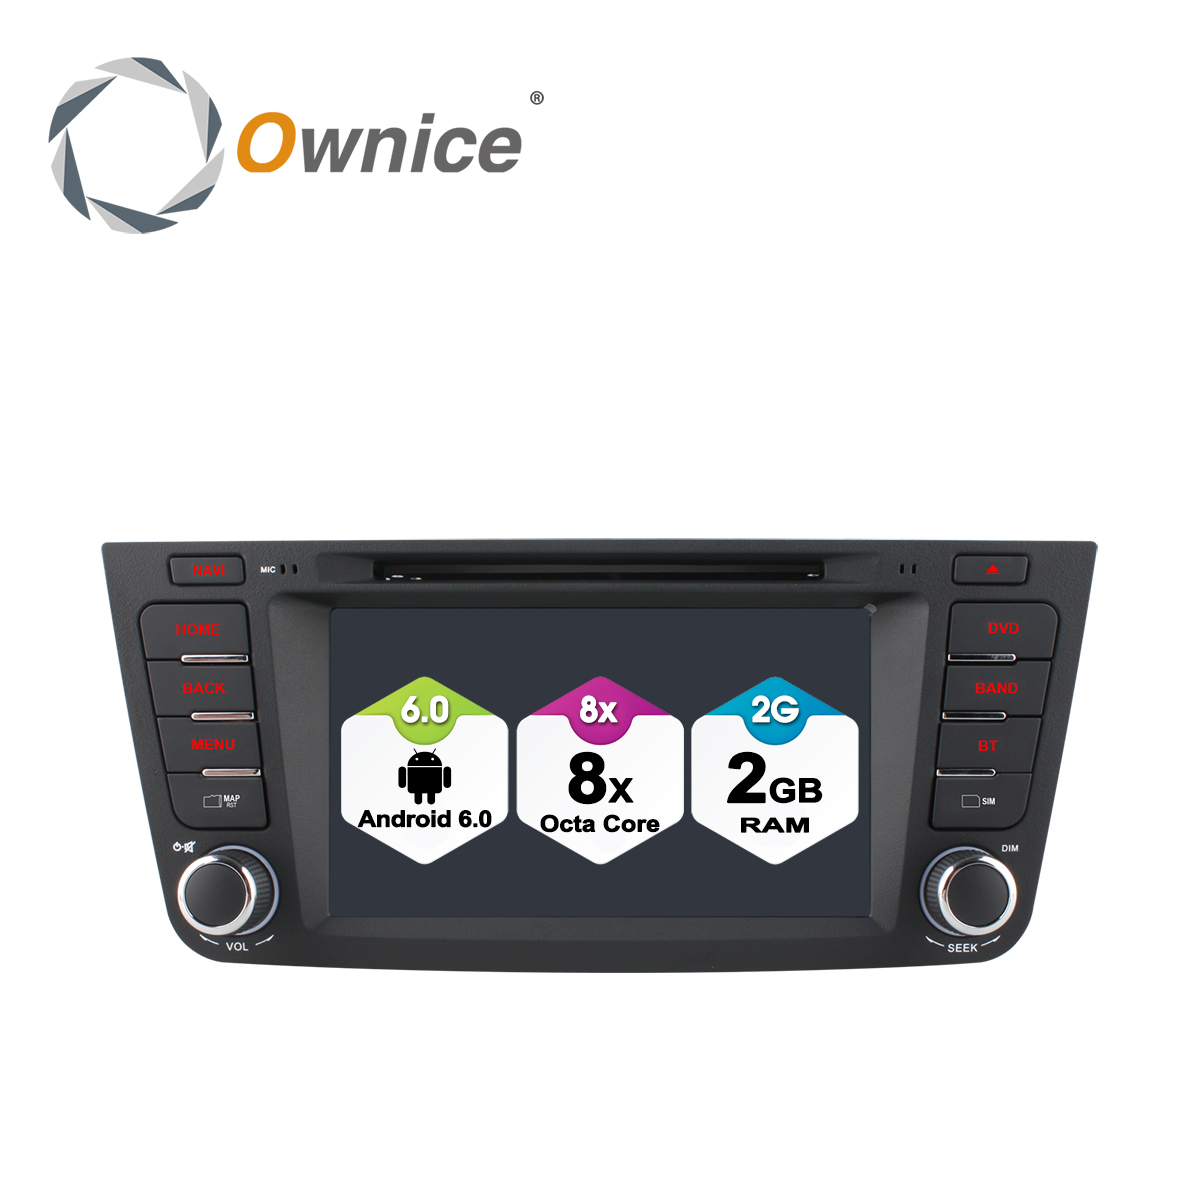 Ownice C500 Octa 8 Core Android 6.0 2 DIN lecteur DVD de voiture pour Geely Emgrand X7 EX7 GX7 avec 1024*600 2 GB RAM 32 GB ROM support 4G